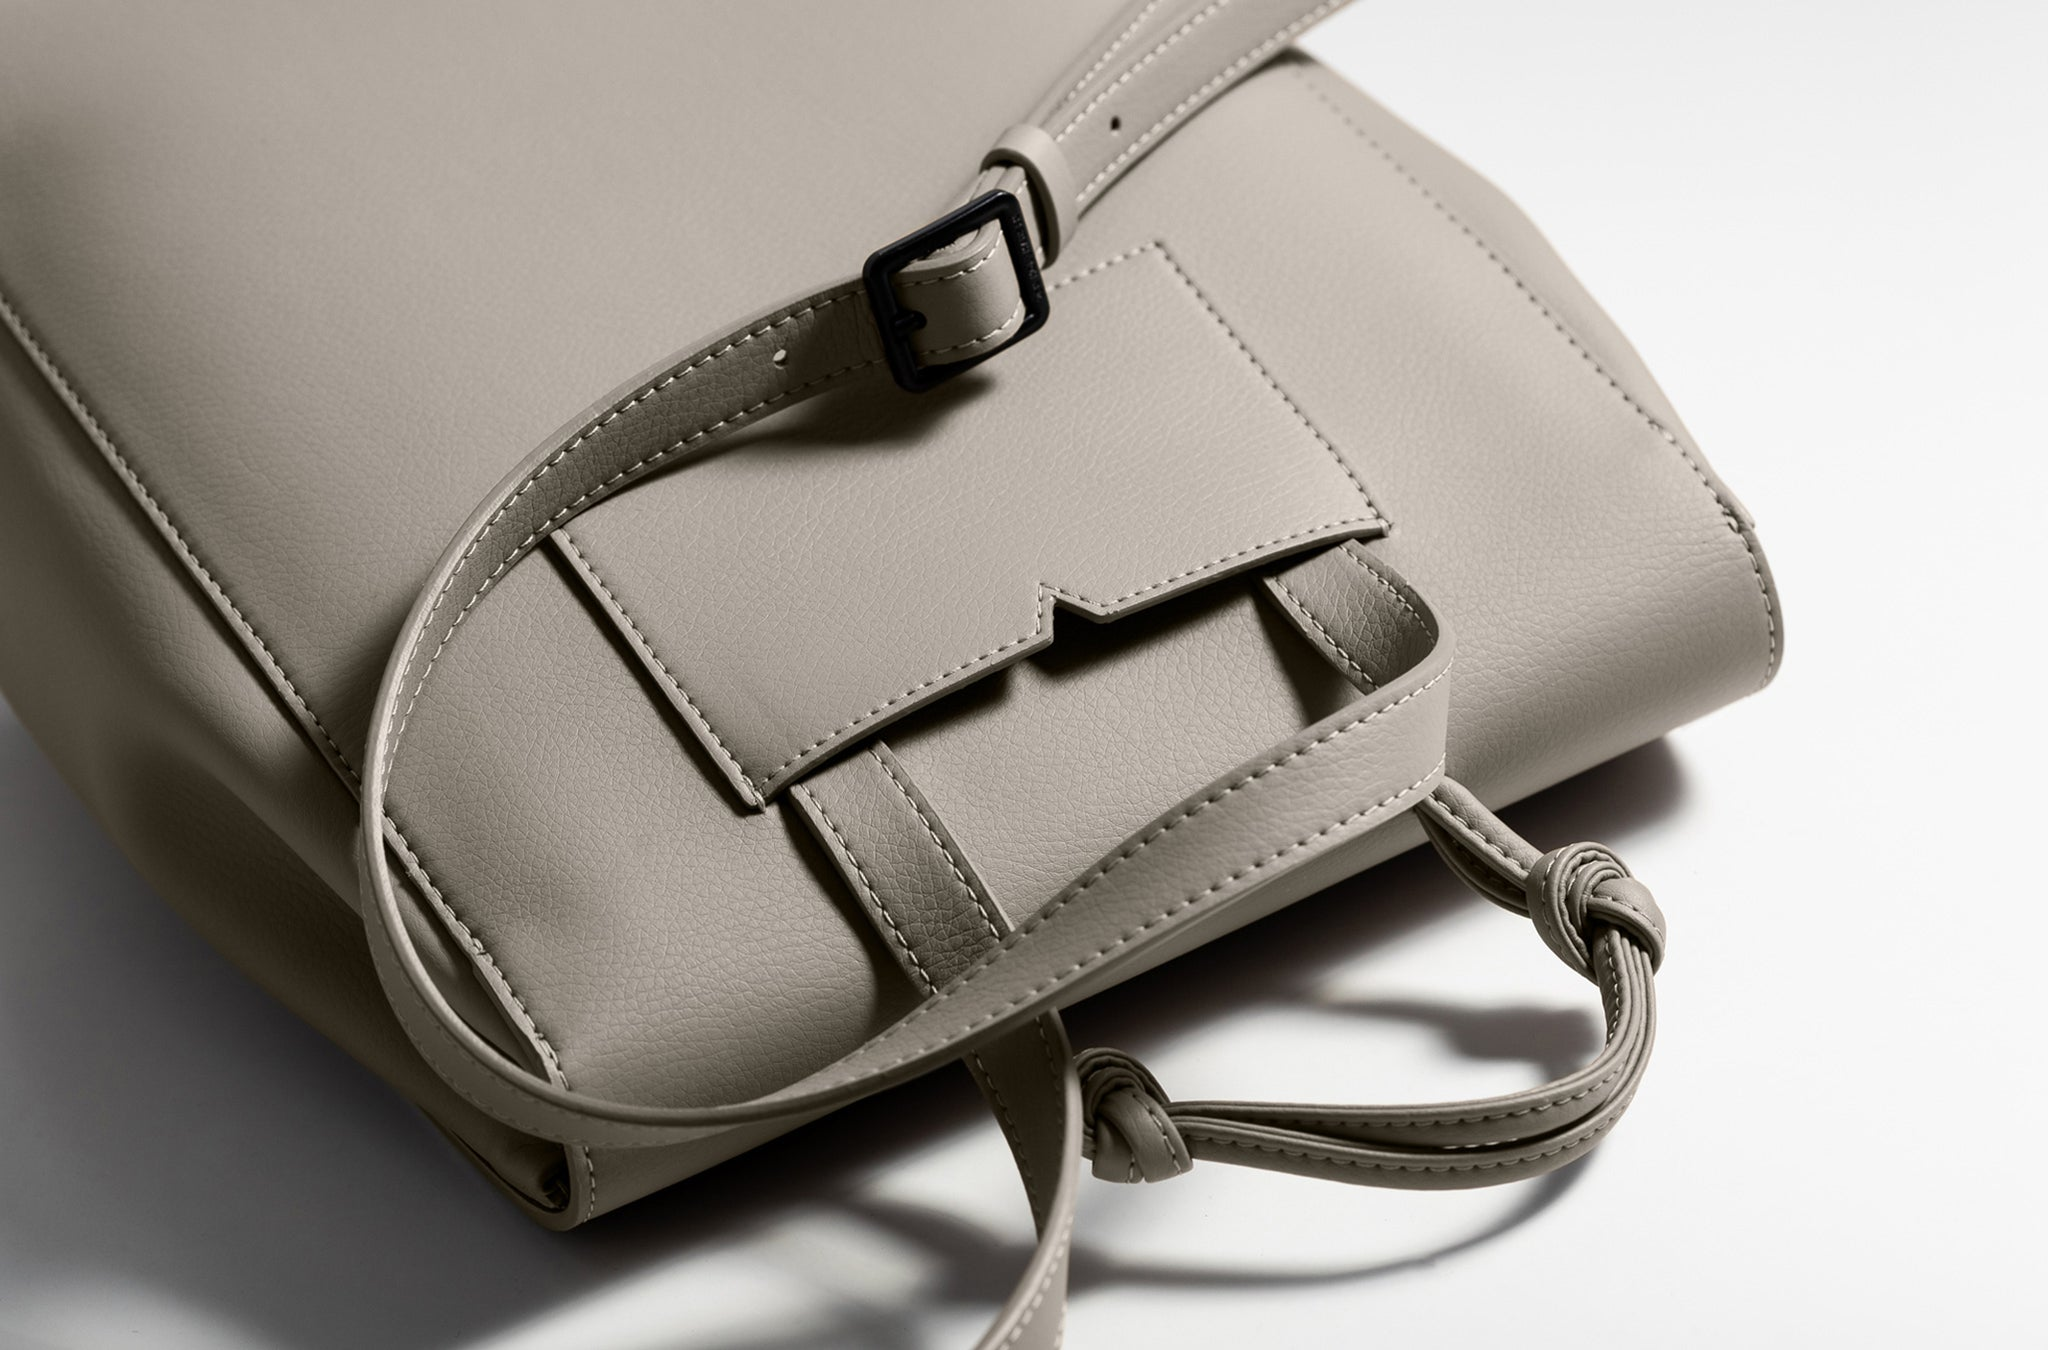 The Mini Backpack in Technik-Leather in Stone